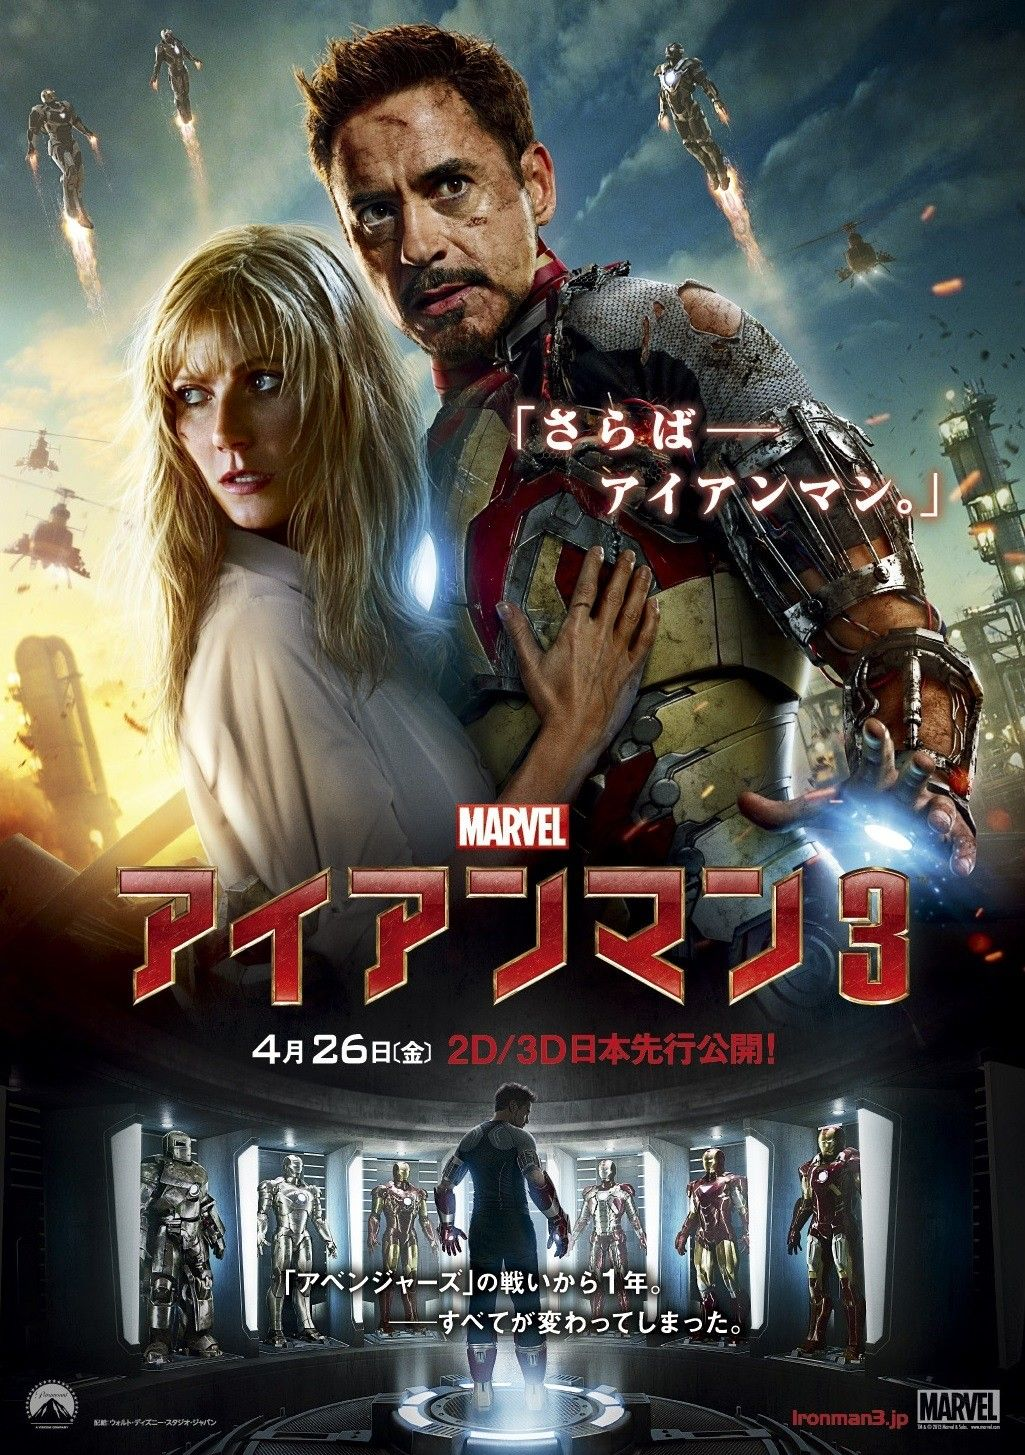 Iron man 3 movie poster 8 with downey jr paltrow as stark and iron man 3 movie poster 8 with downey jr paltrow as stark and potts voltagebd Gallery